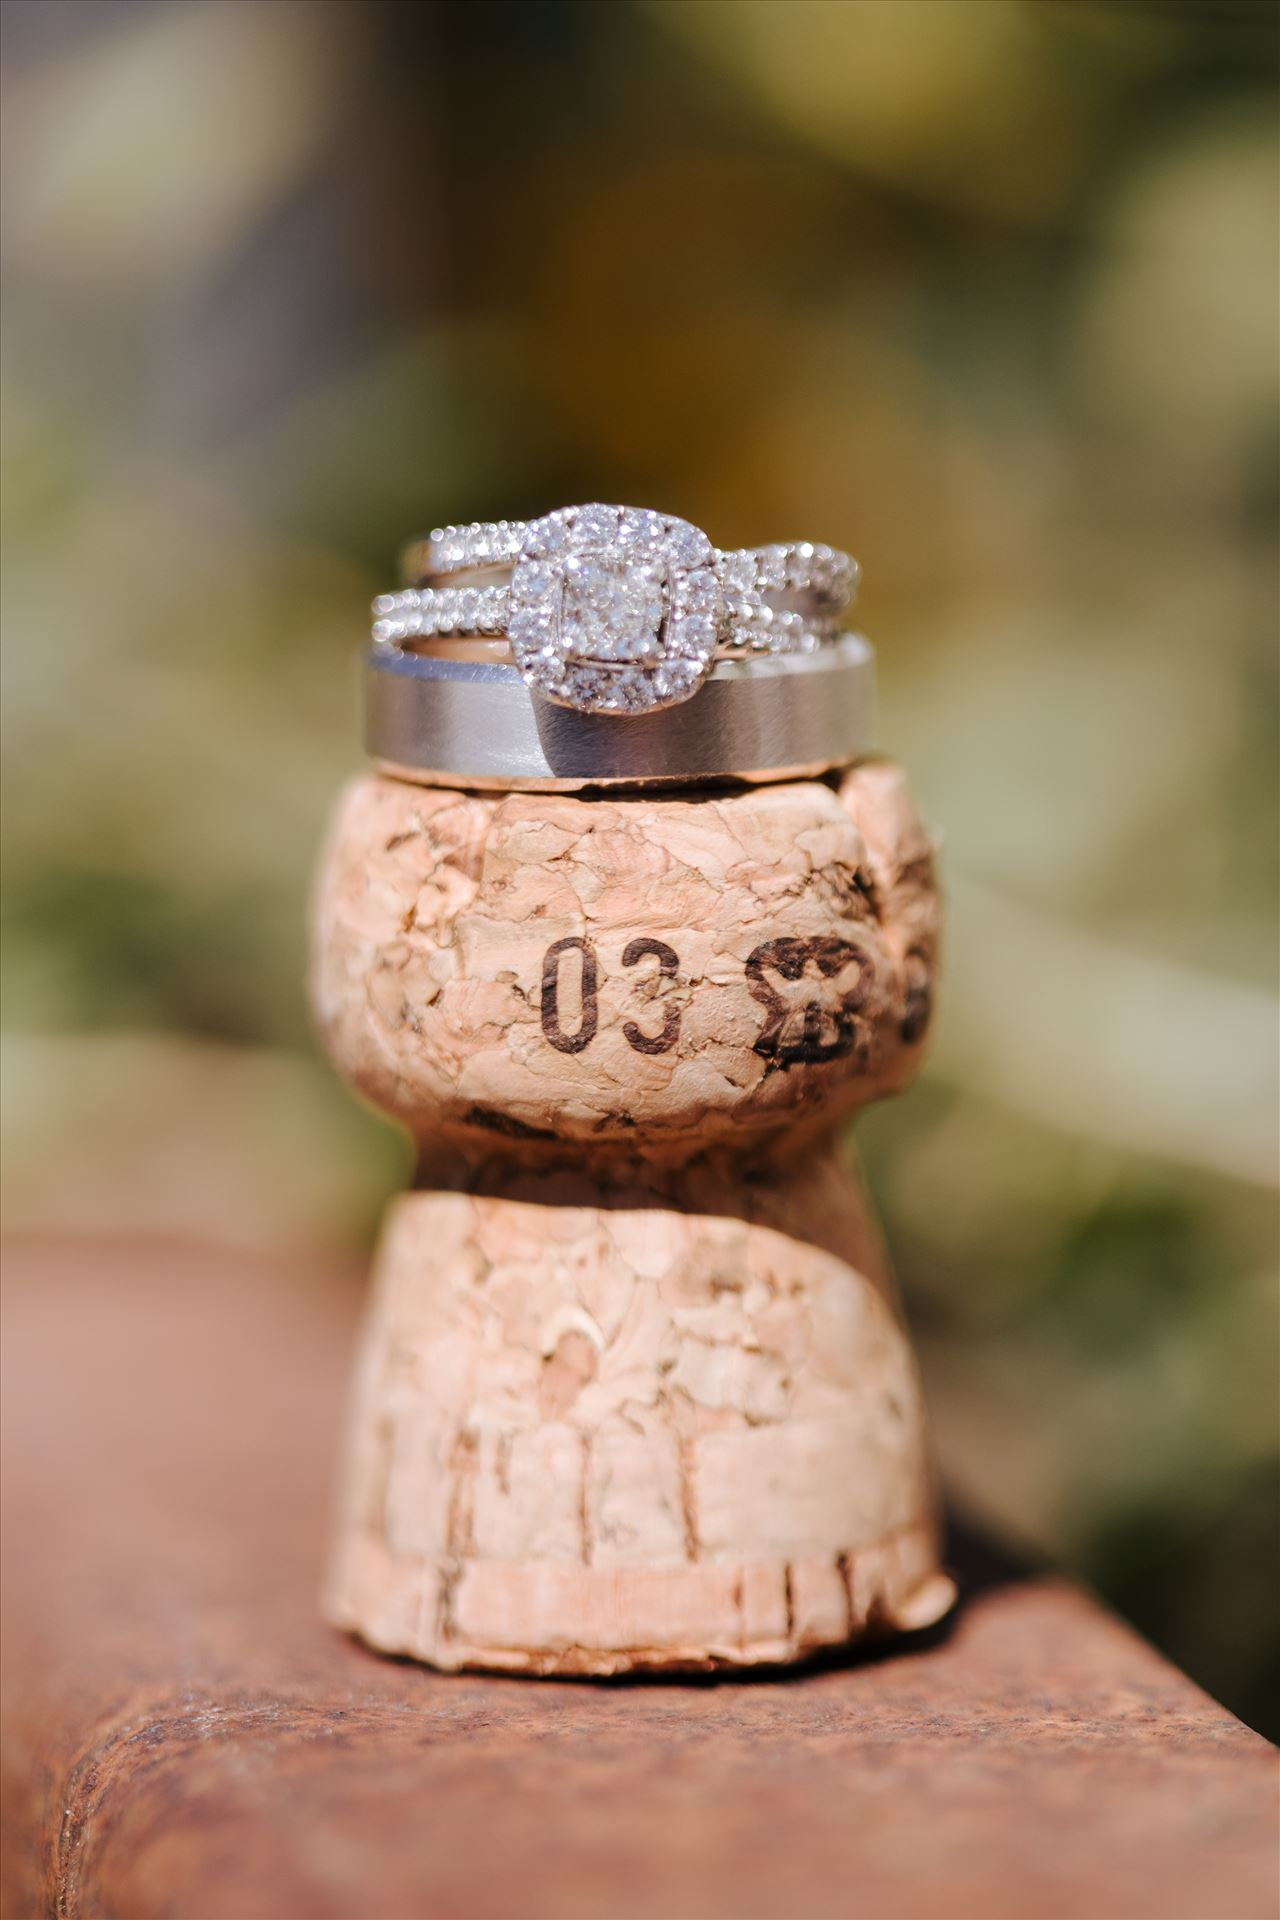 _Y9A6475.JPG - Tooth and Nail Winery elegant and formal wedding in Paso Robles California wine country by Mirror's Edge Photography, San Luis Obispo County Wedding Photographer. Wedding rings on wine cork by Sarah Williams